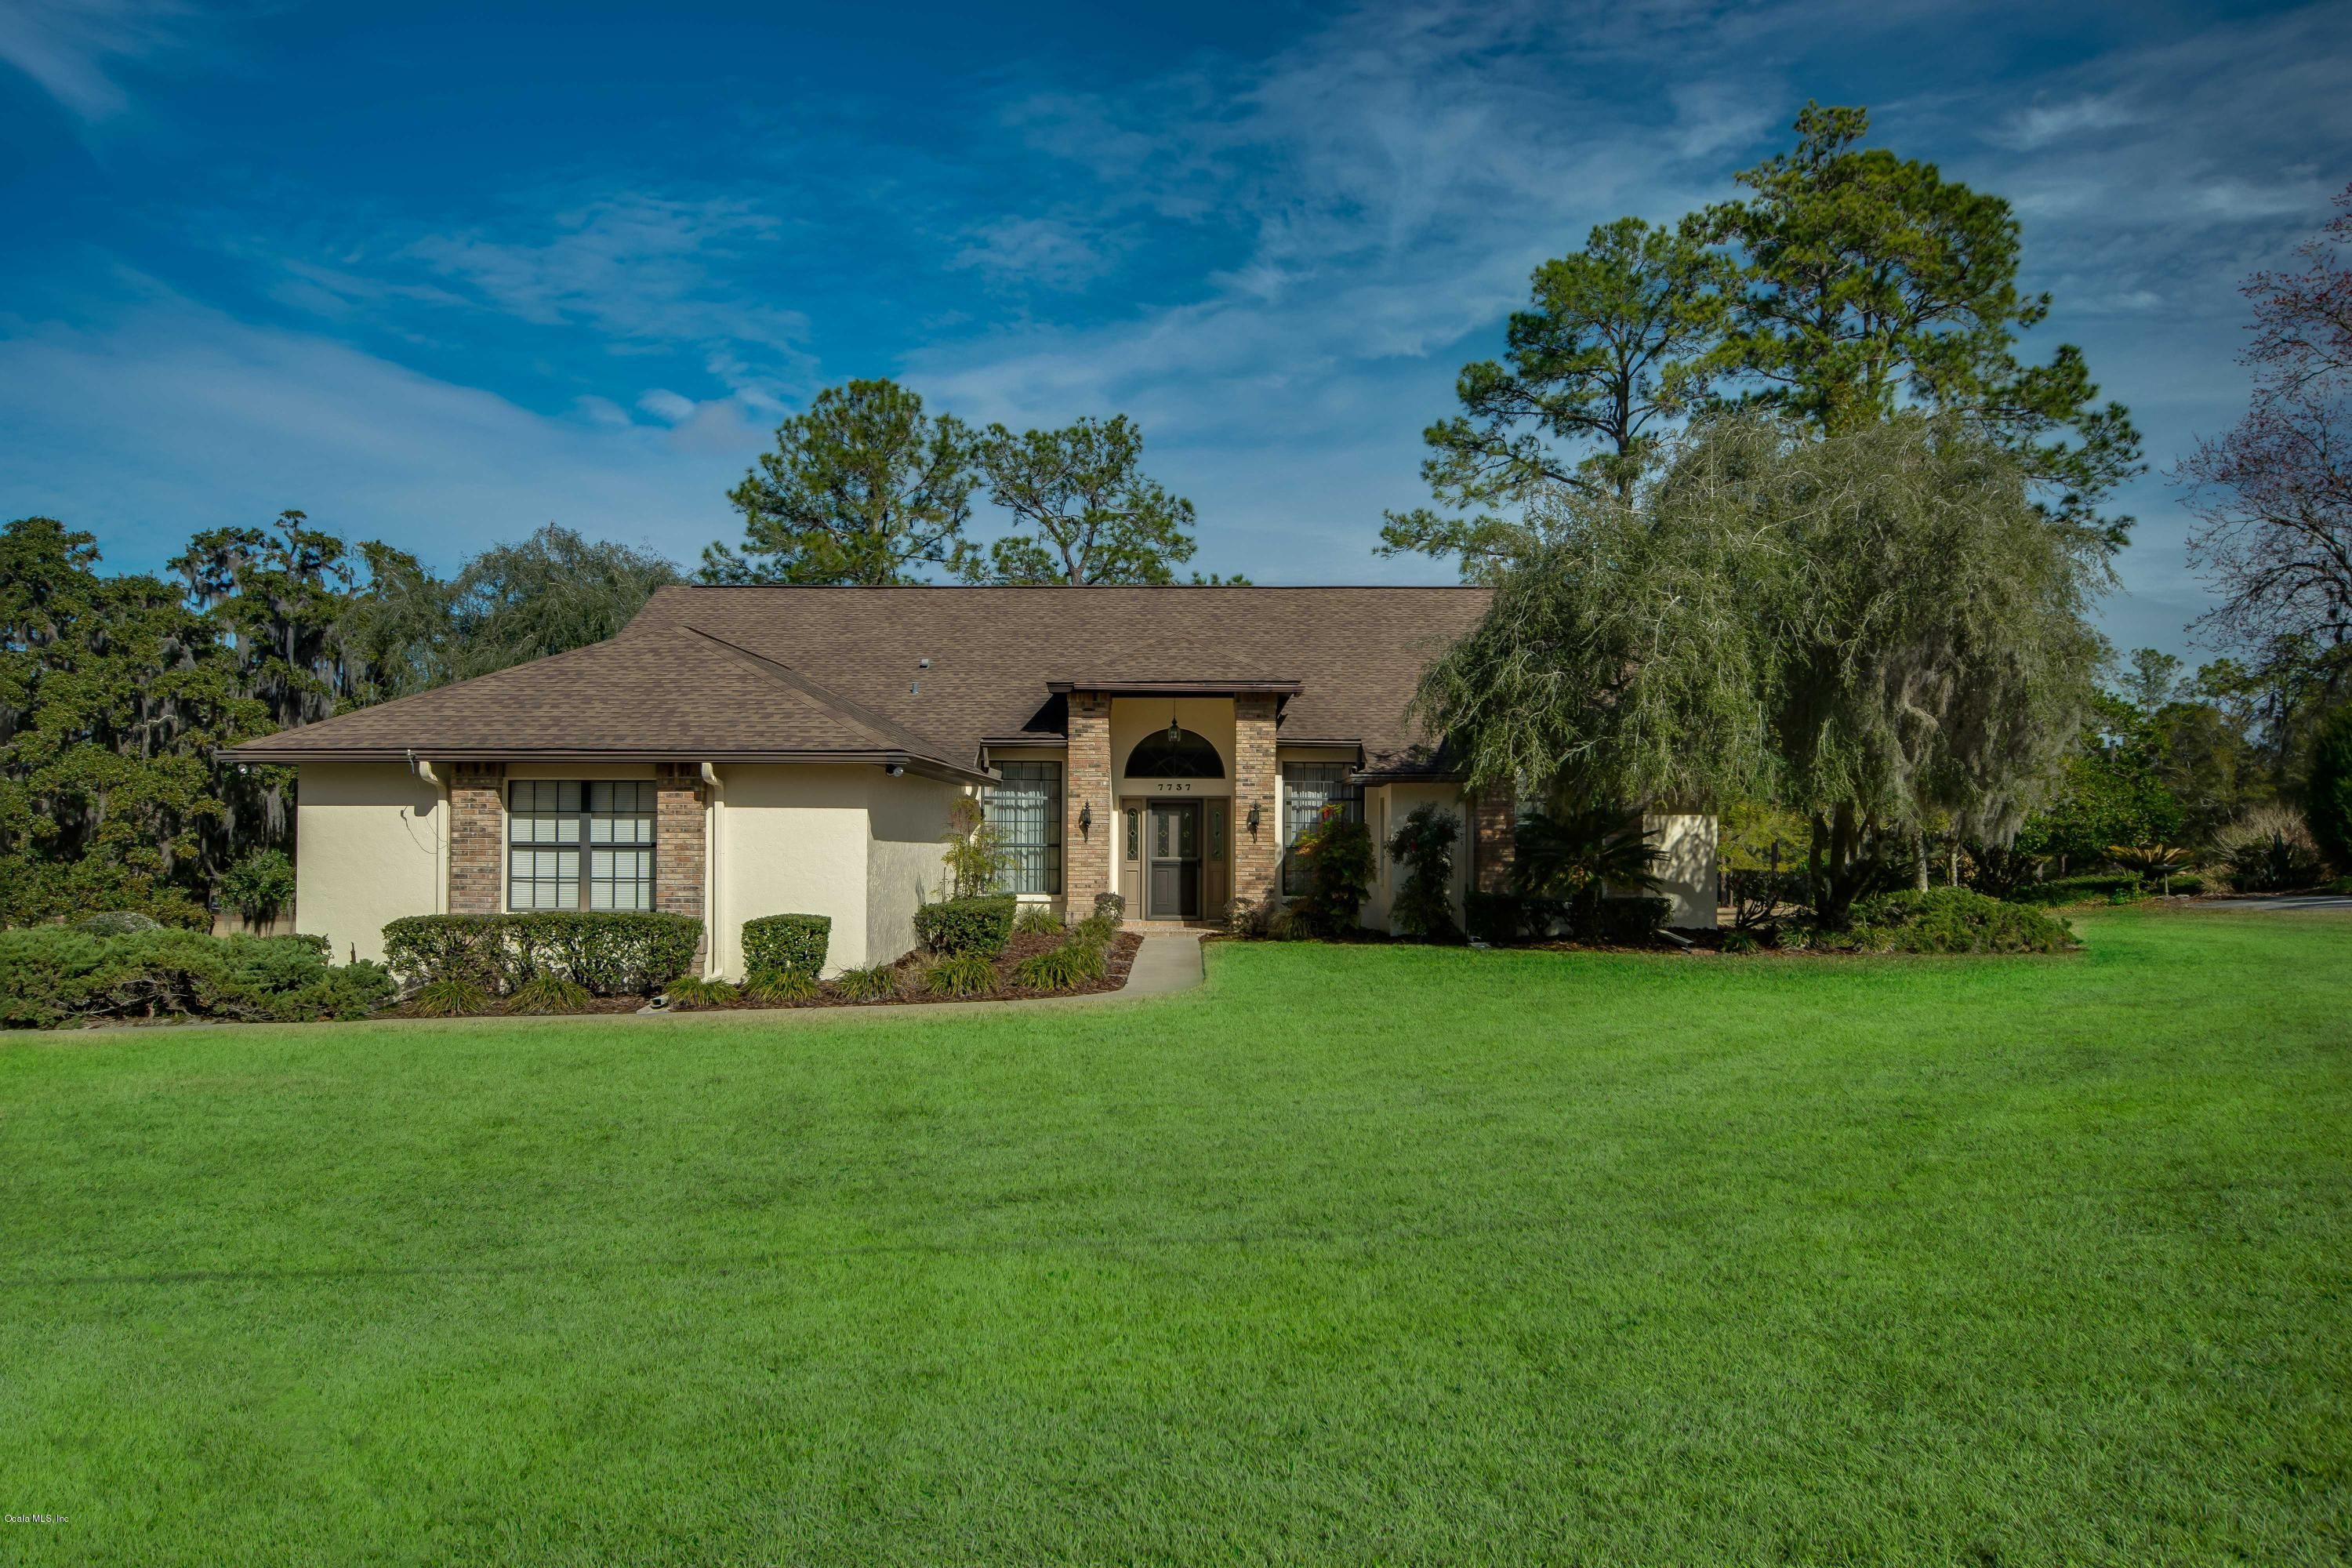 7737 NW 56TH PLACE, OCALA, FL 34482